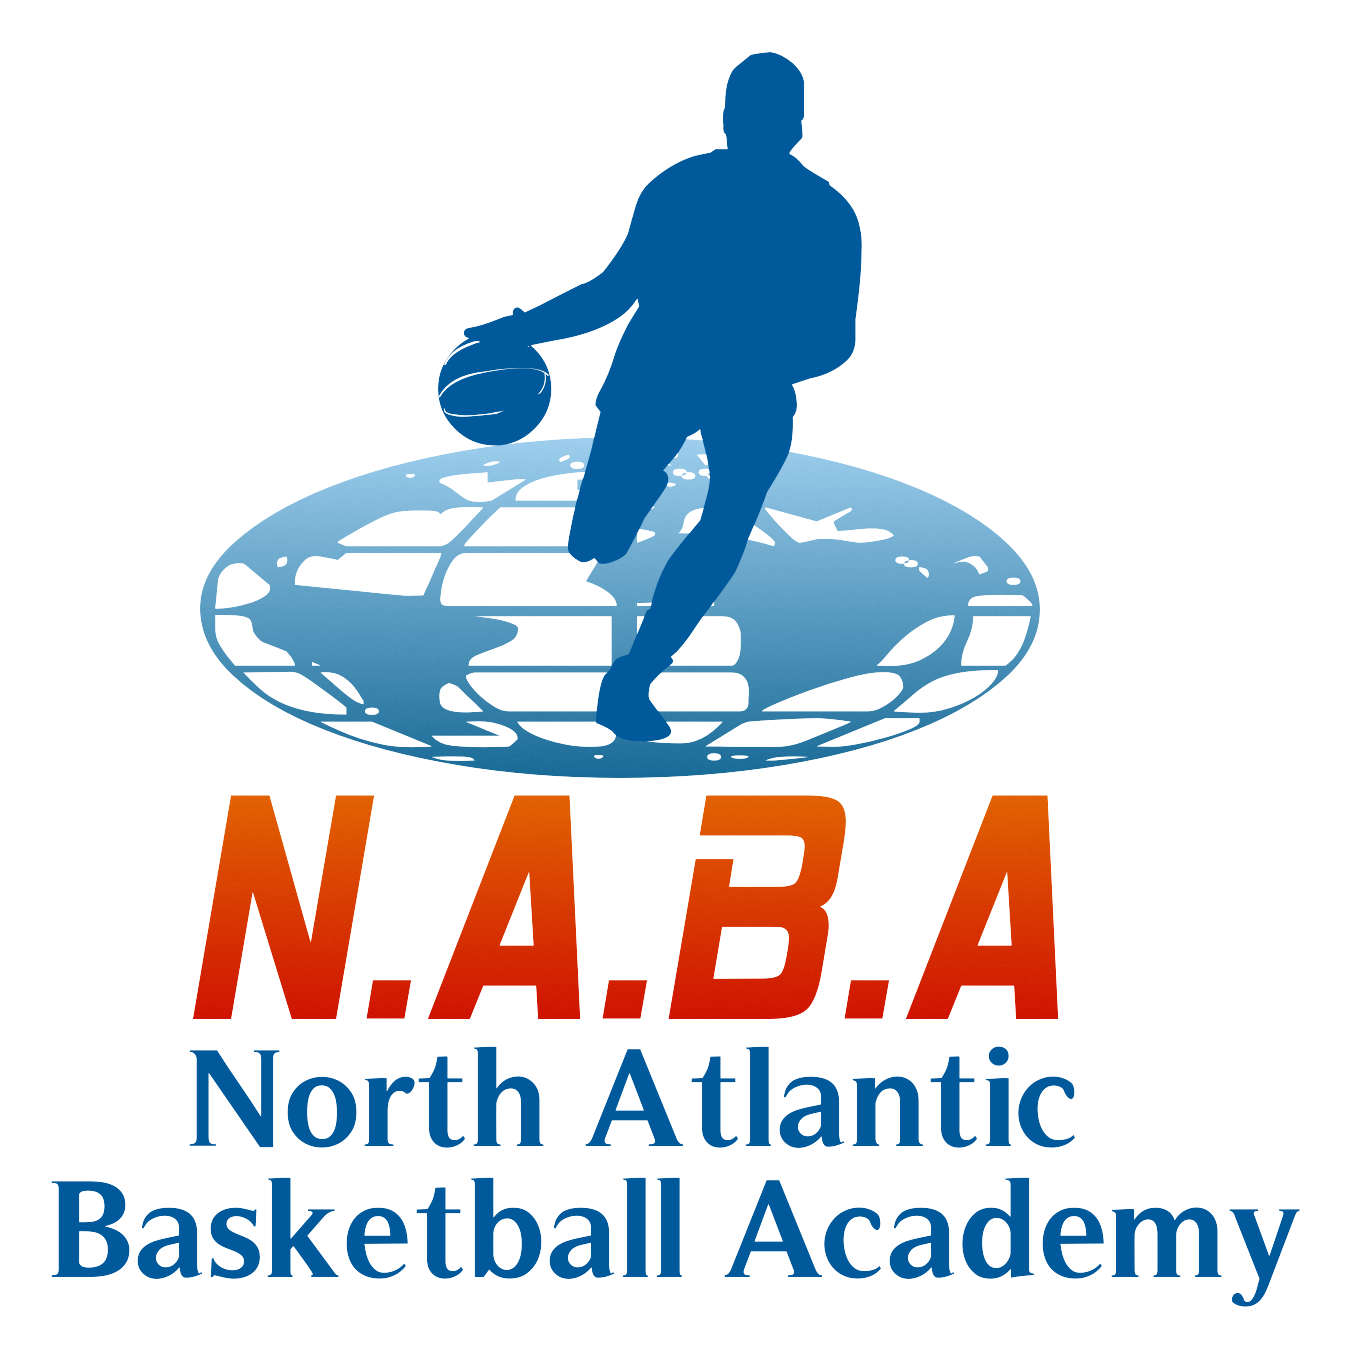 North Atlantic Basketball Academy